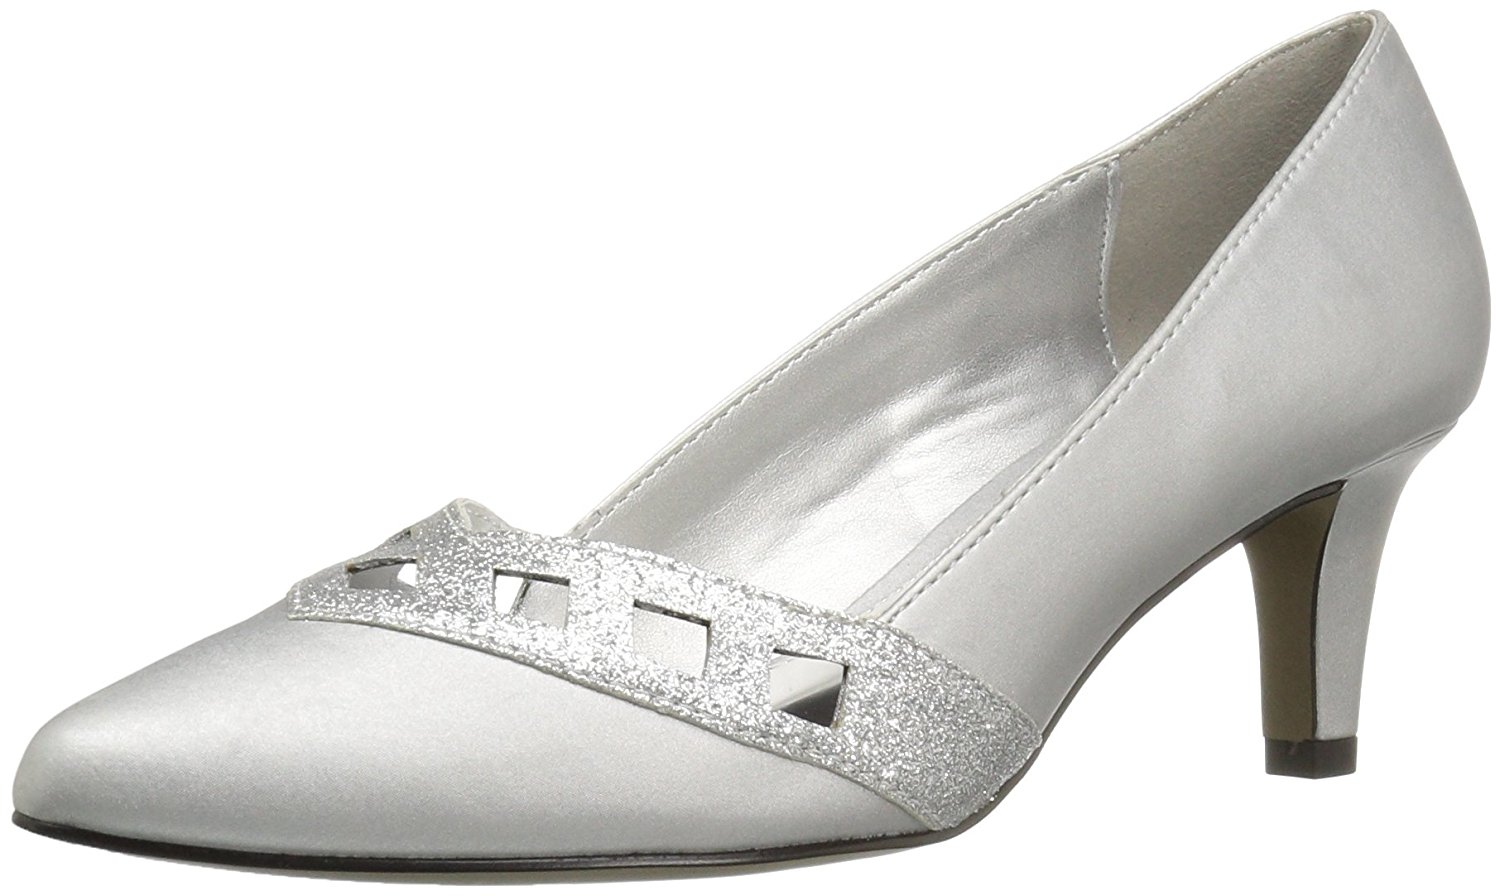 Easy Street Womens Valiant Closed Toe Classic Silver Satin/Glitter Size 10.0 W